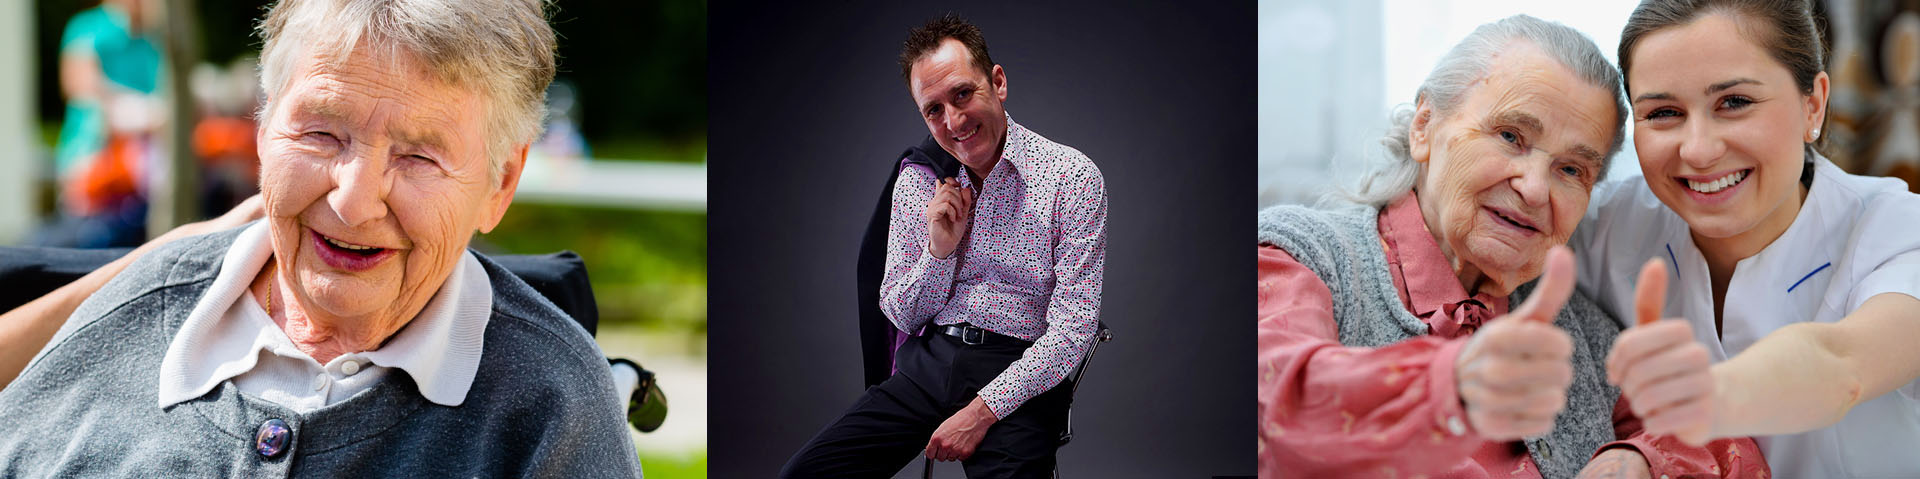 Care Home Entertainer Andy Greaves